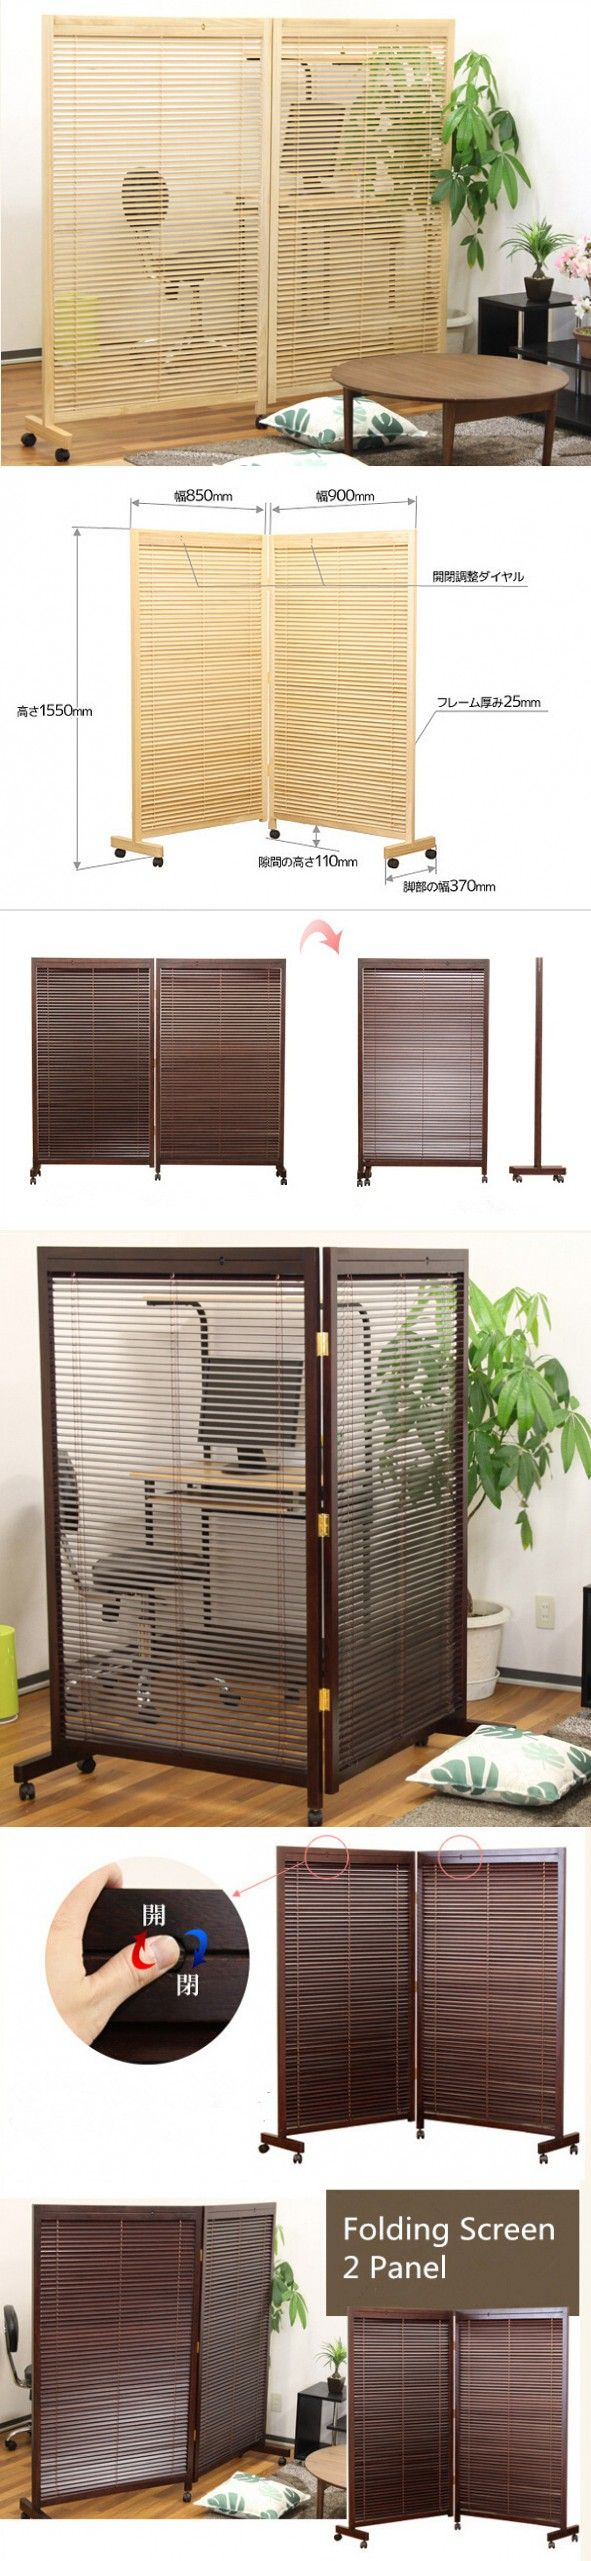 Japanese Movable Wood Partition Wall 2-Panel Folding Screen Room Divider Home Decor Oriental Decorative Portable Asian Furniture $179